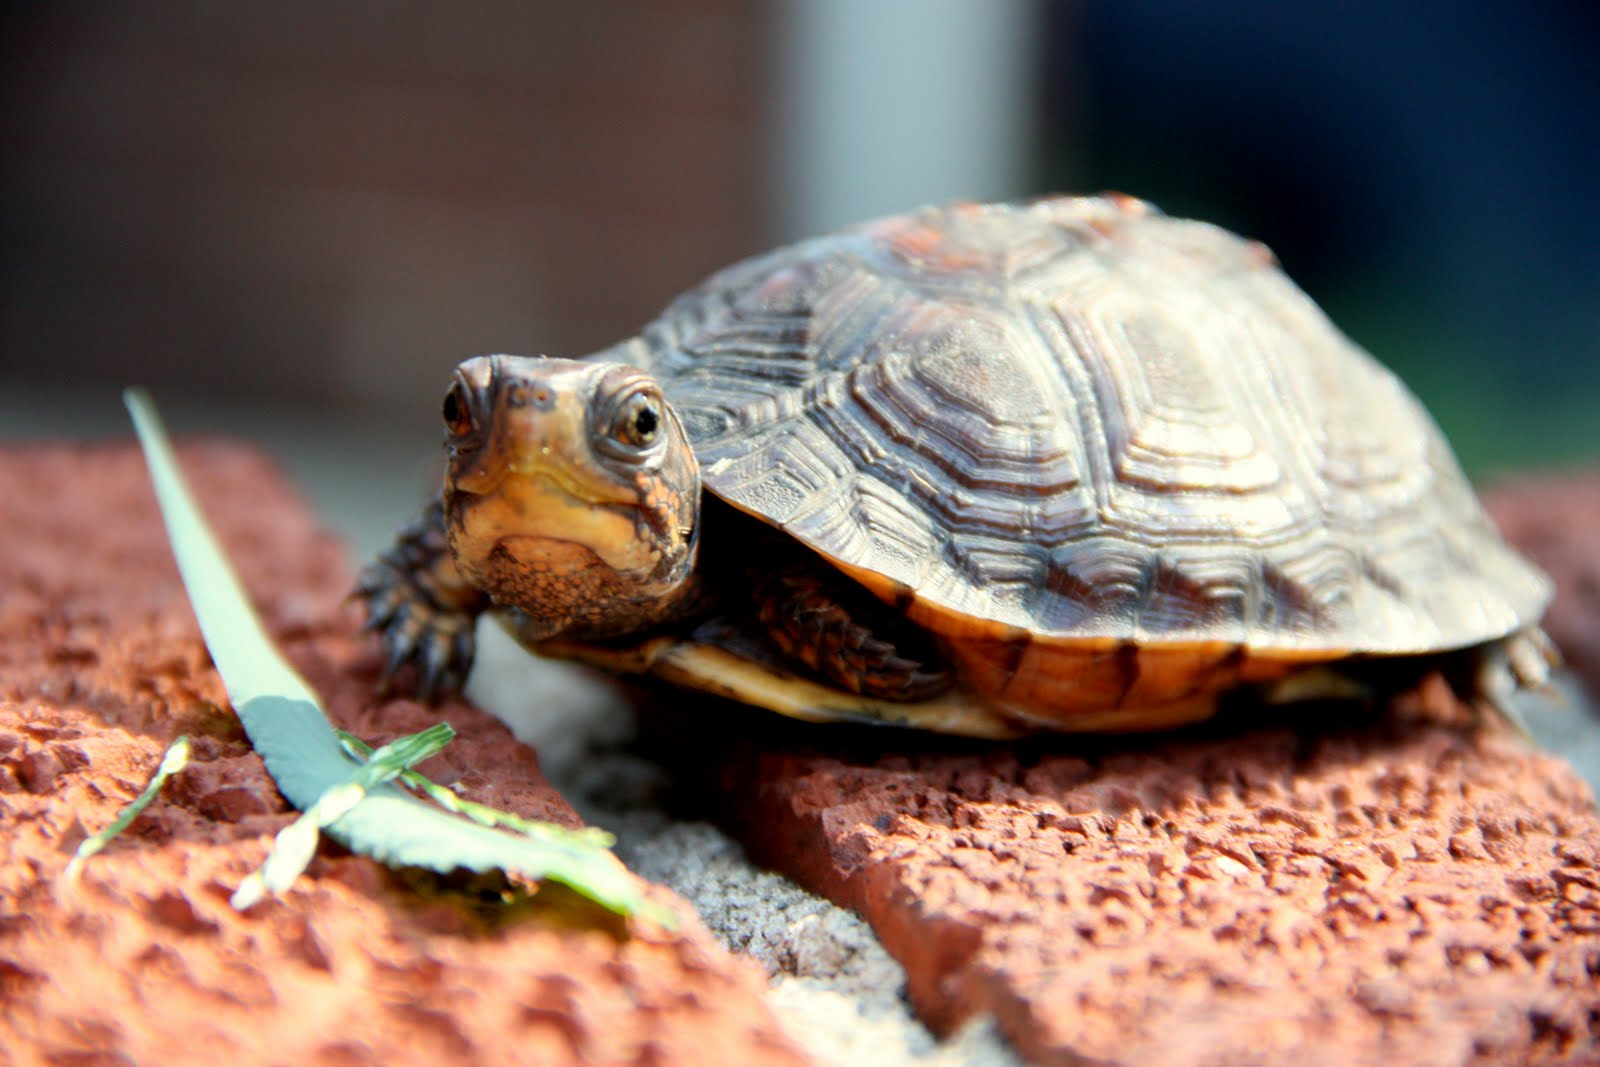 But last wednesday was one turtle s lucky day that was the day that i